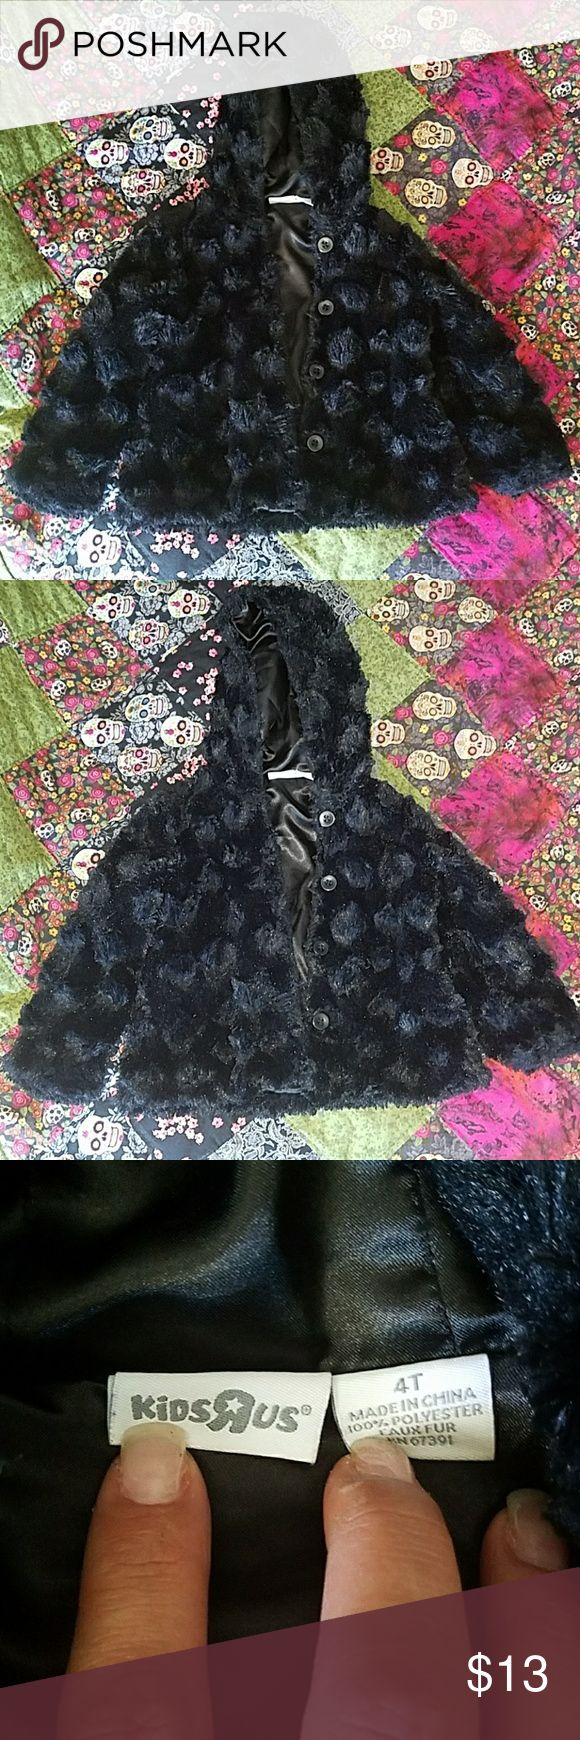 Black faux fur coat (with hood) Never worn but no tags. No rips, holes or tears in the lining. All buttons intact kids r us Jackets & Coats